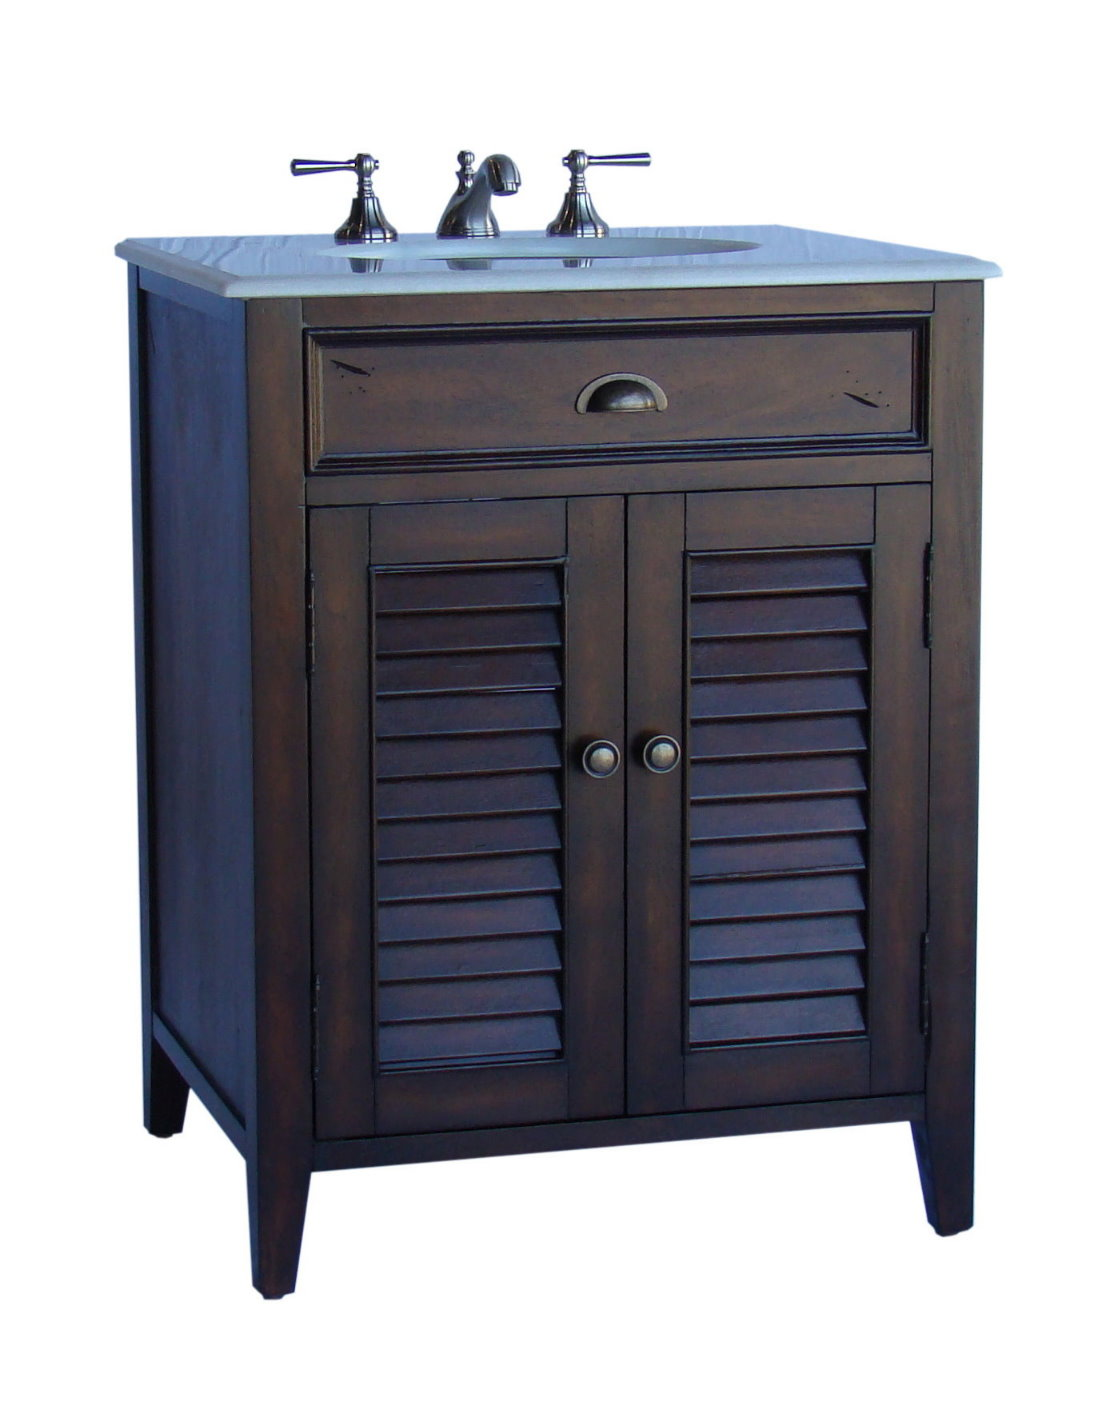 . 26 inch Bathroom Vanity Cottage Beach Style Distressed Brown Finish